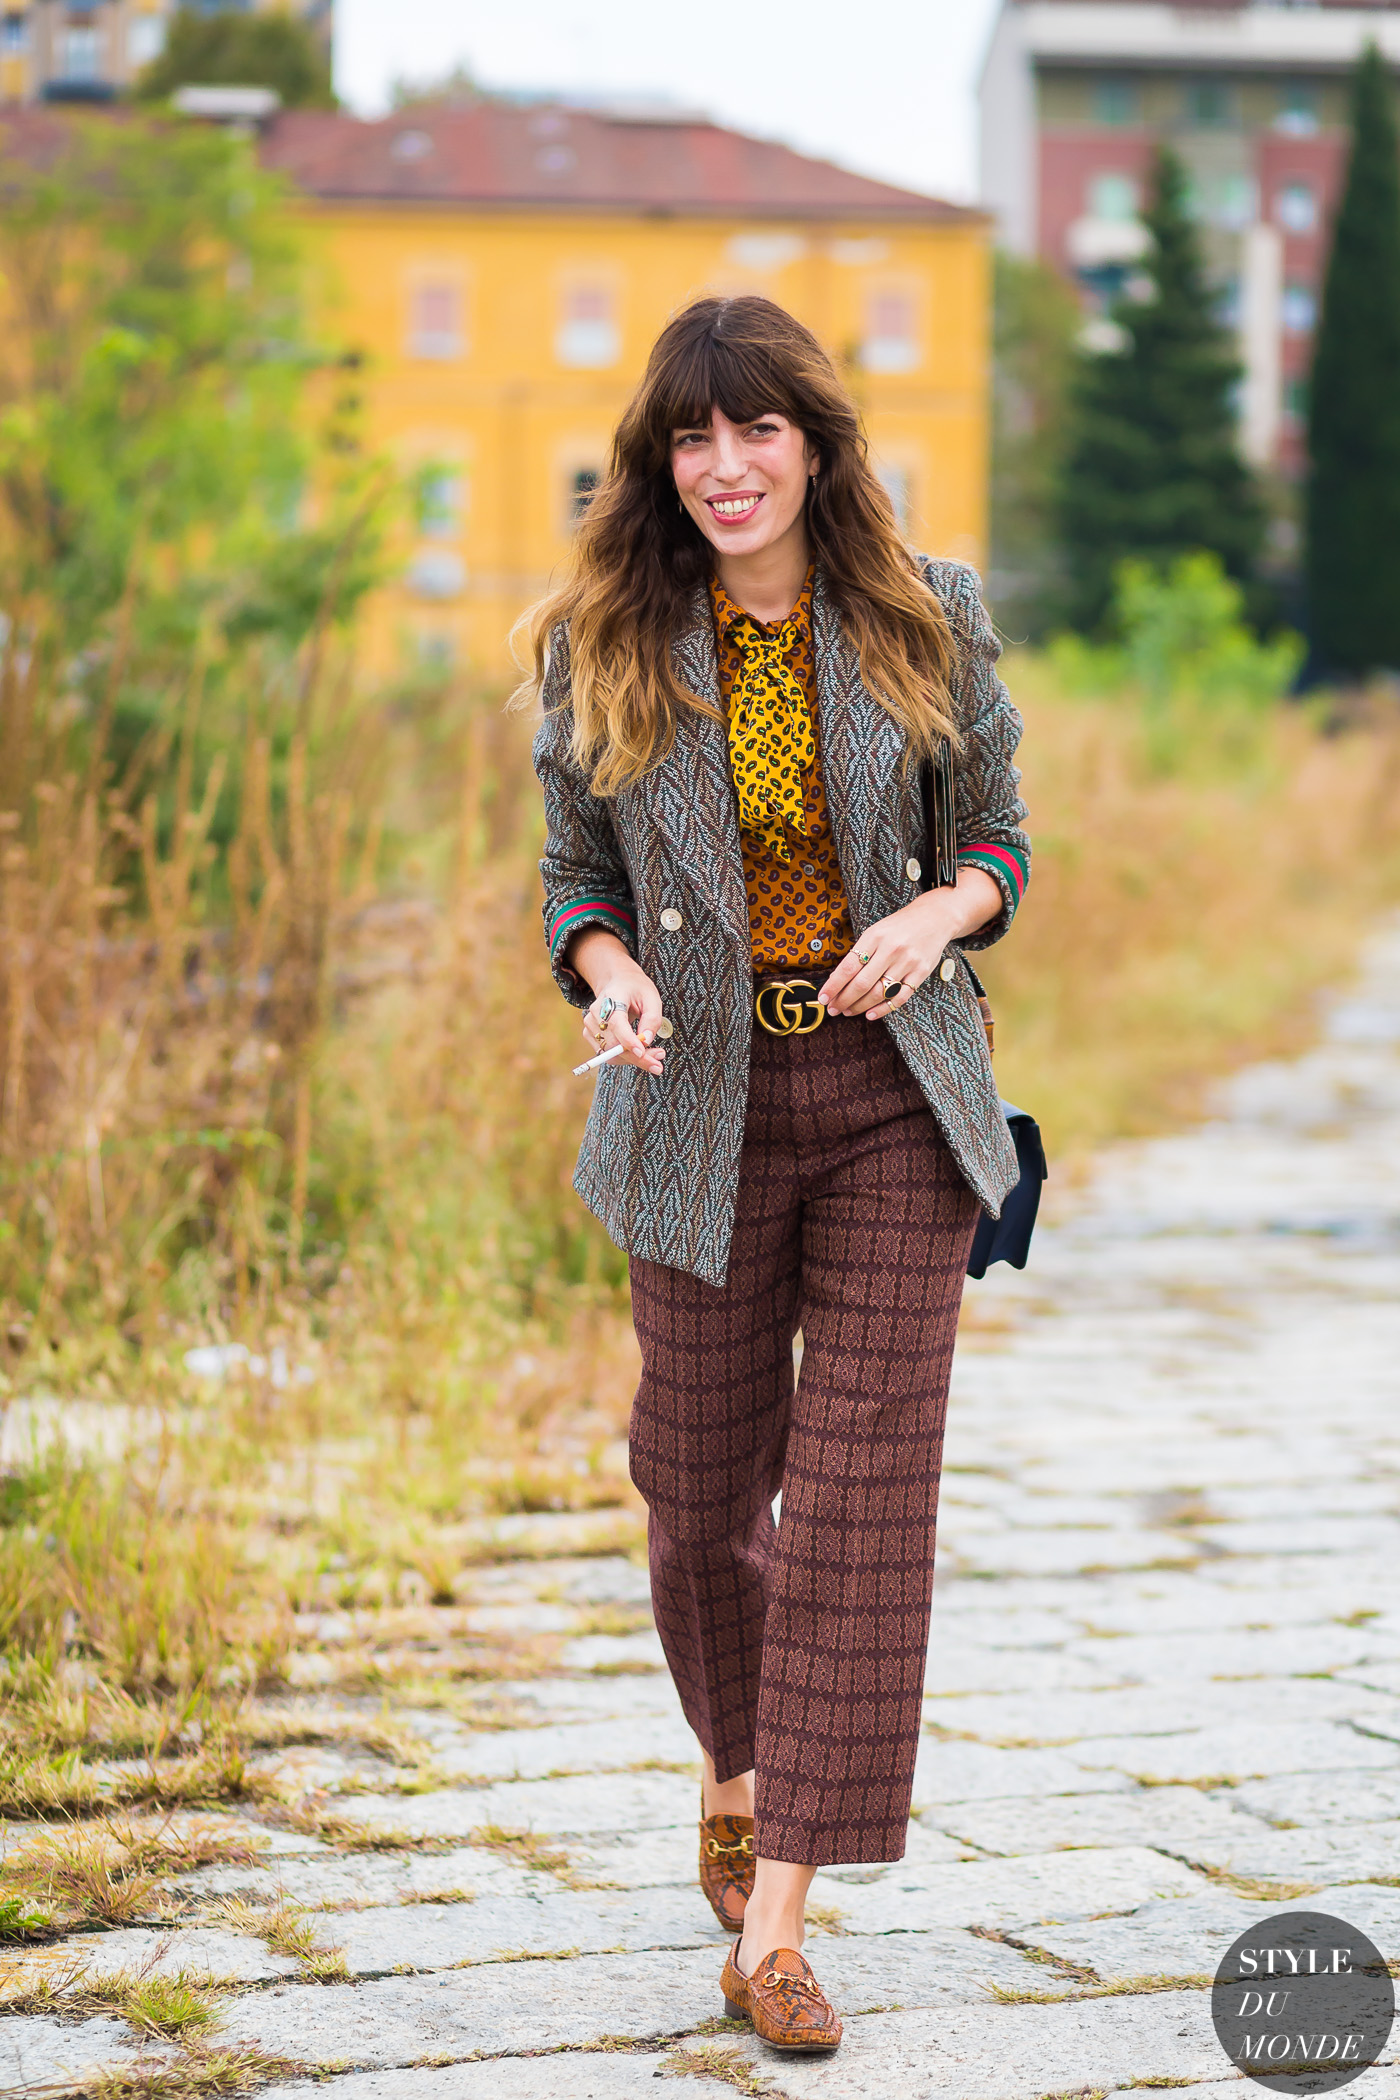 lou-doillon-by-styledumonde-street-style-fashion-photography0e2a2286-700x10502x